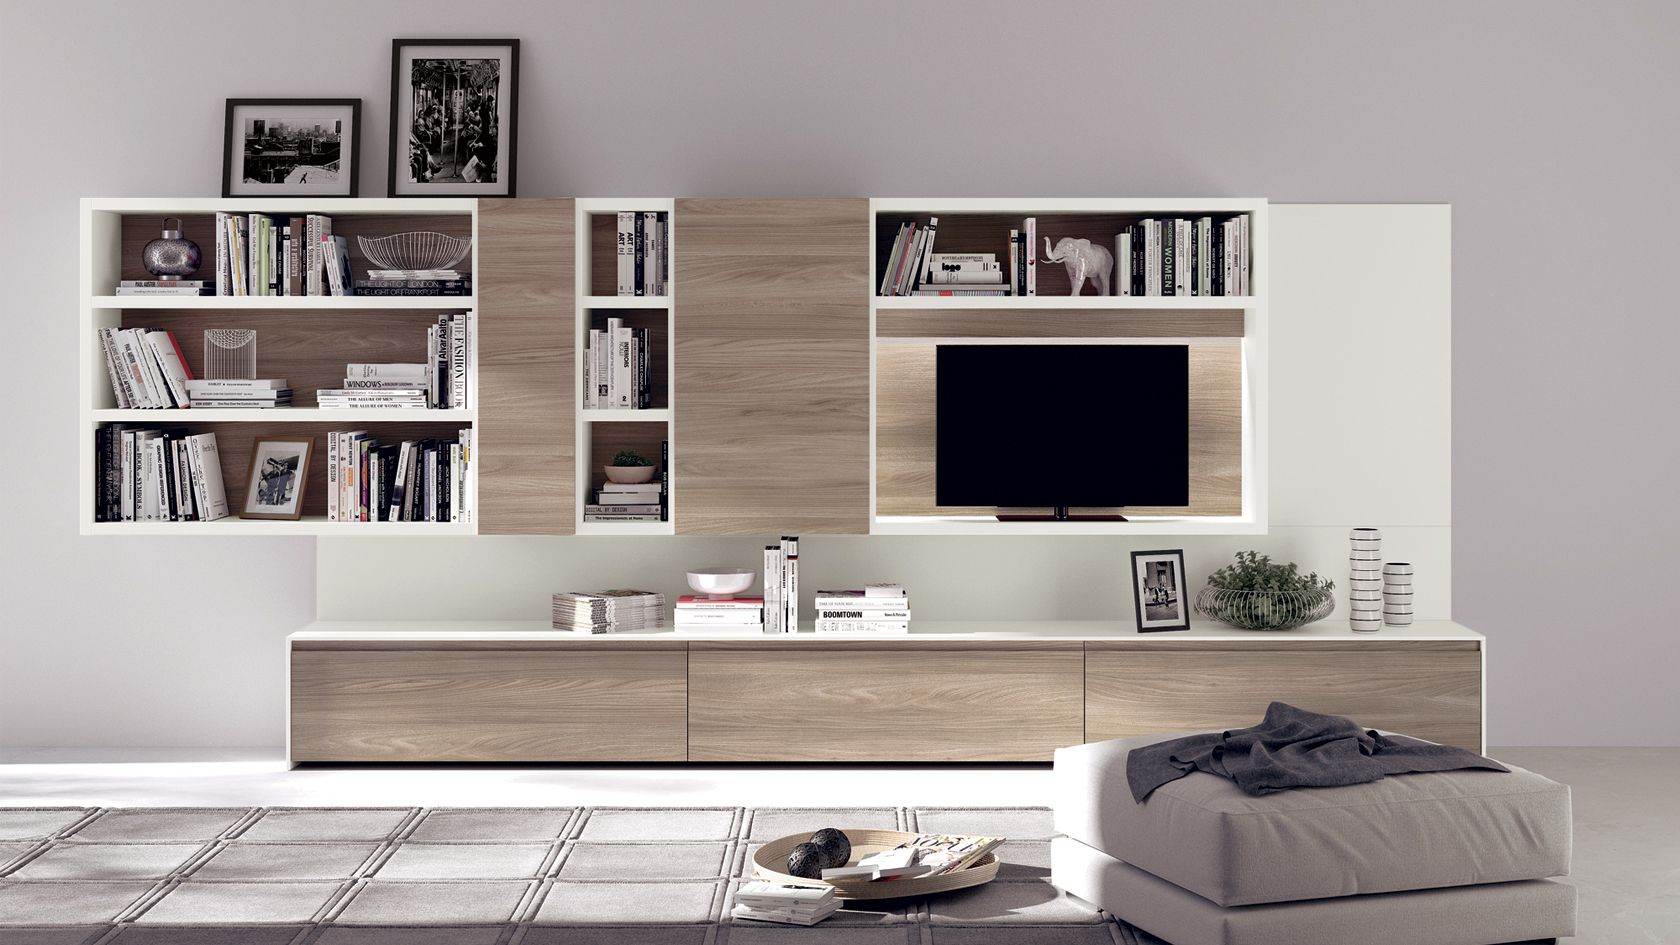 scavolini Living Motus | Квартира | Pinterest | Tv furniture, Room ...